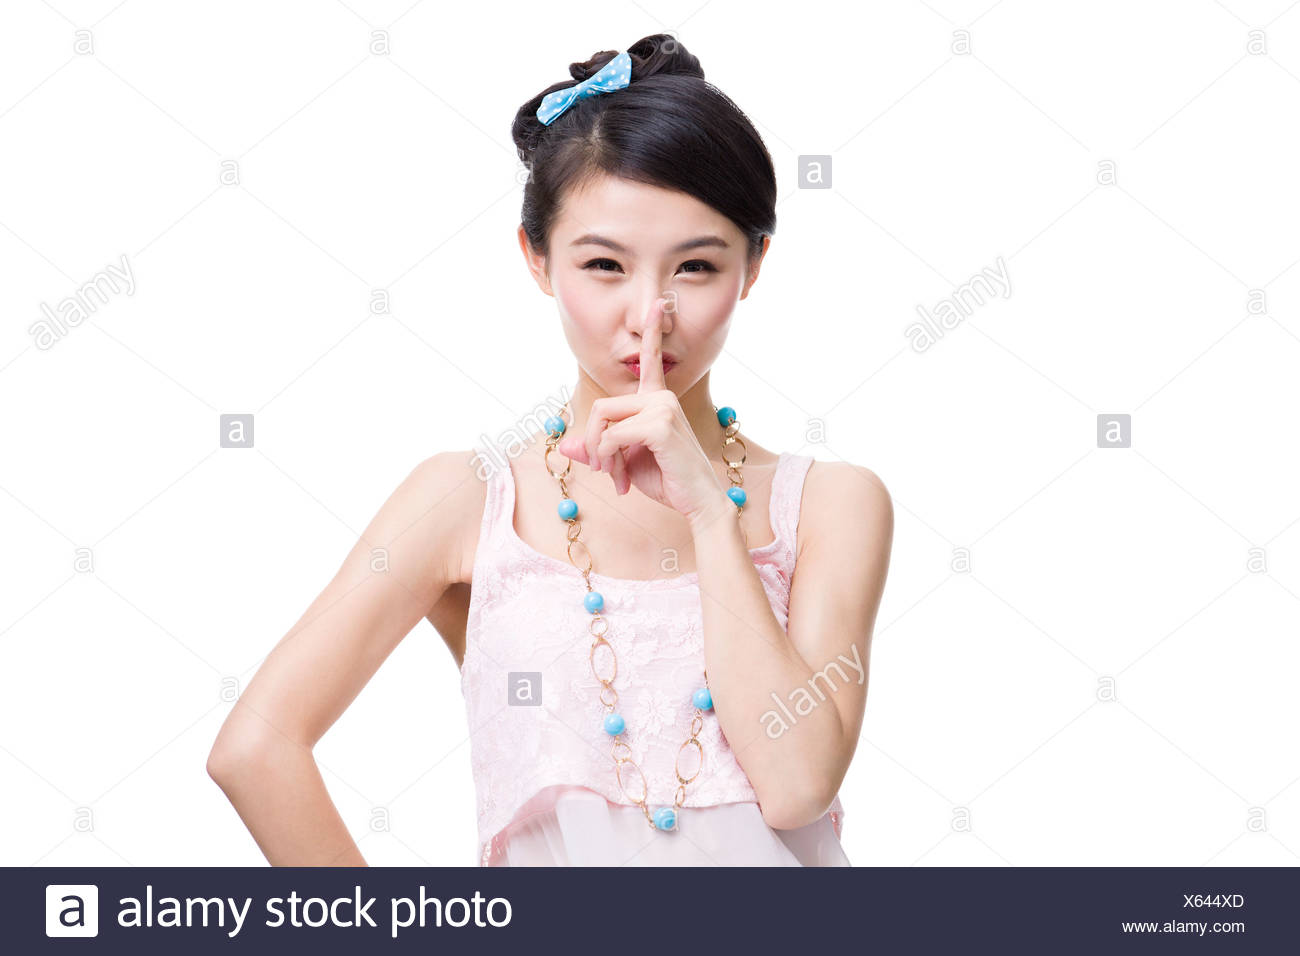 Cute young woman - Stock Image